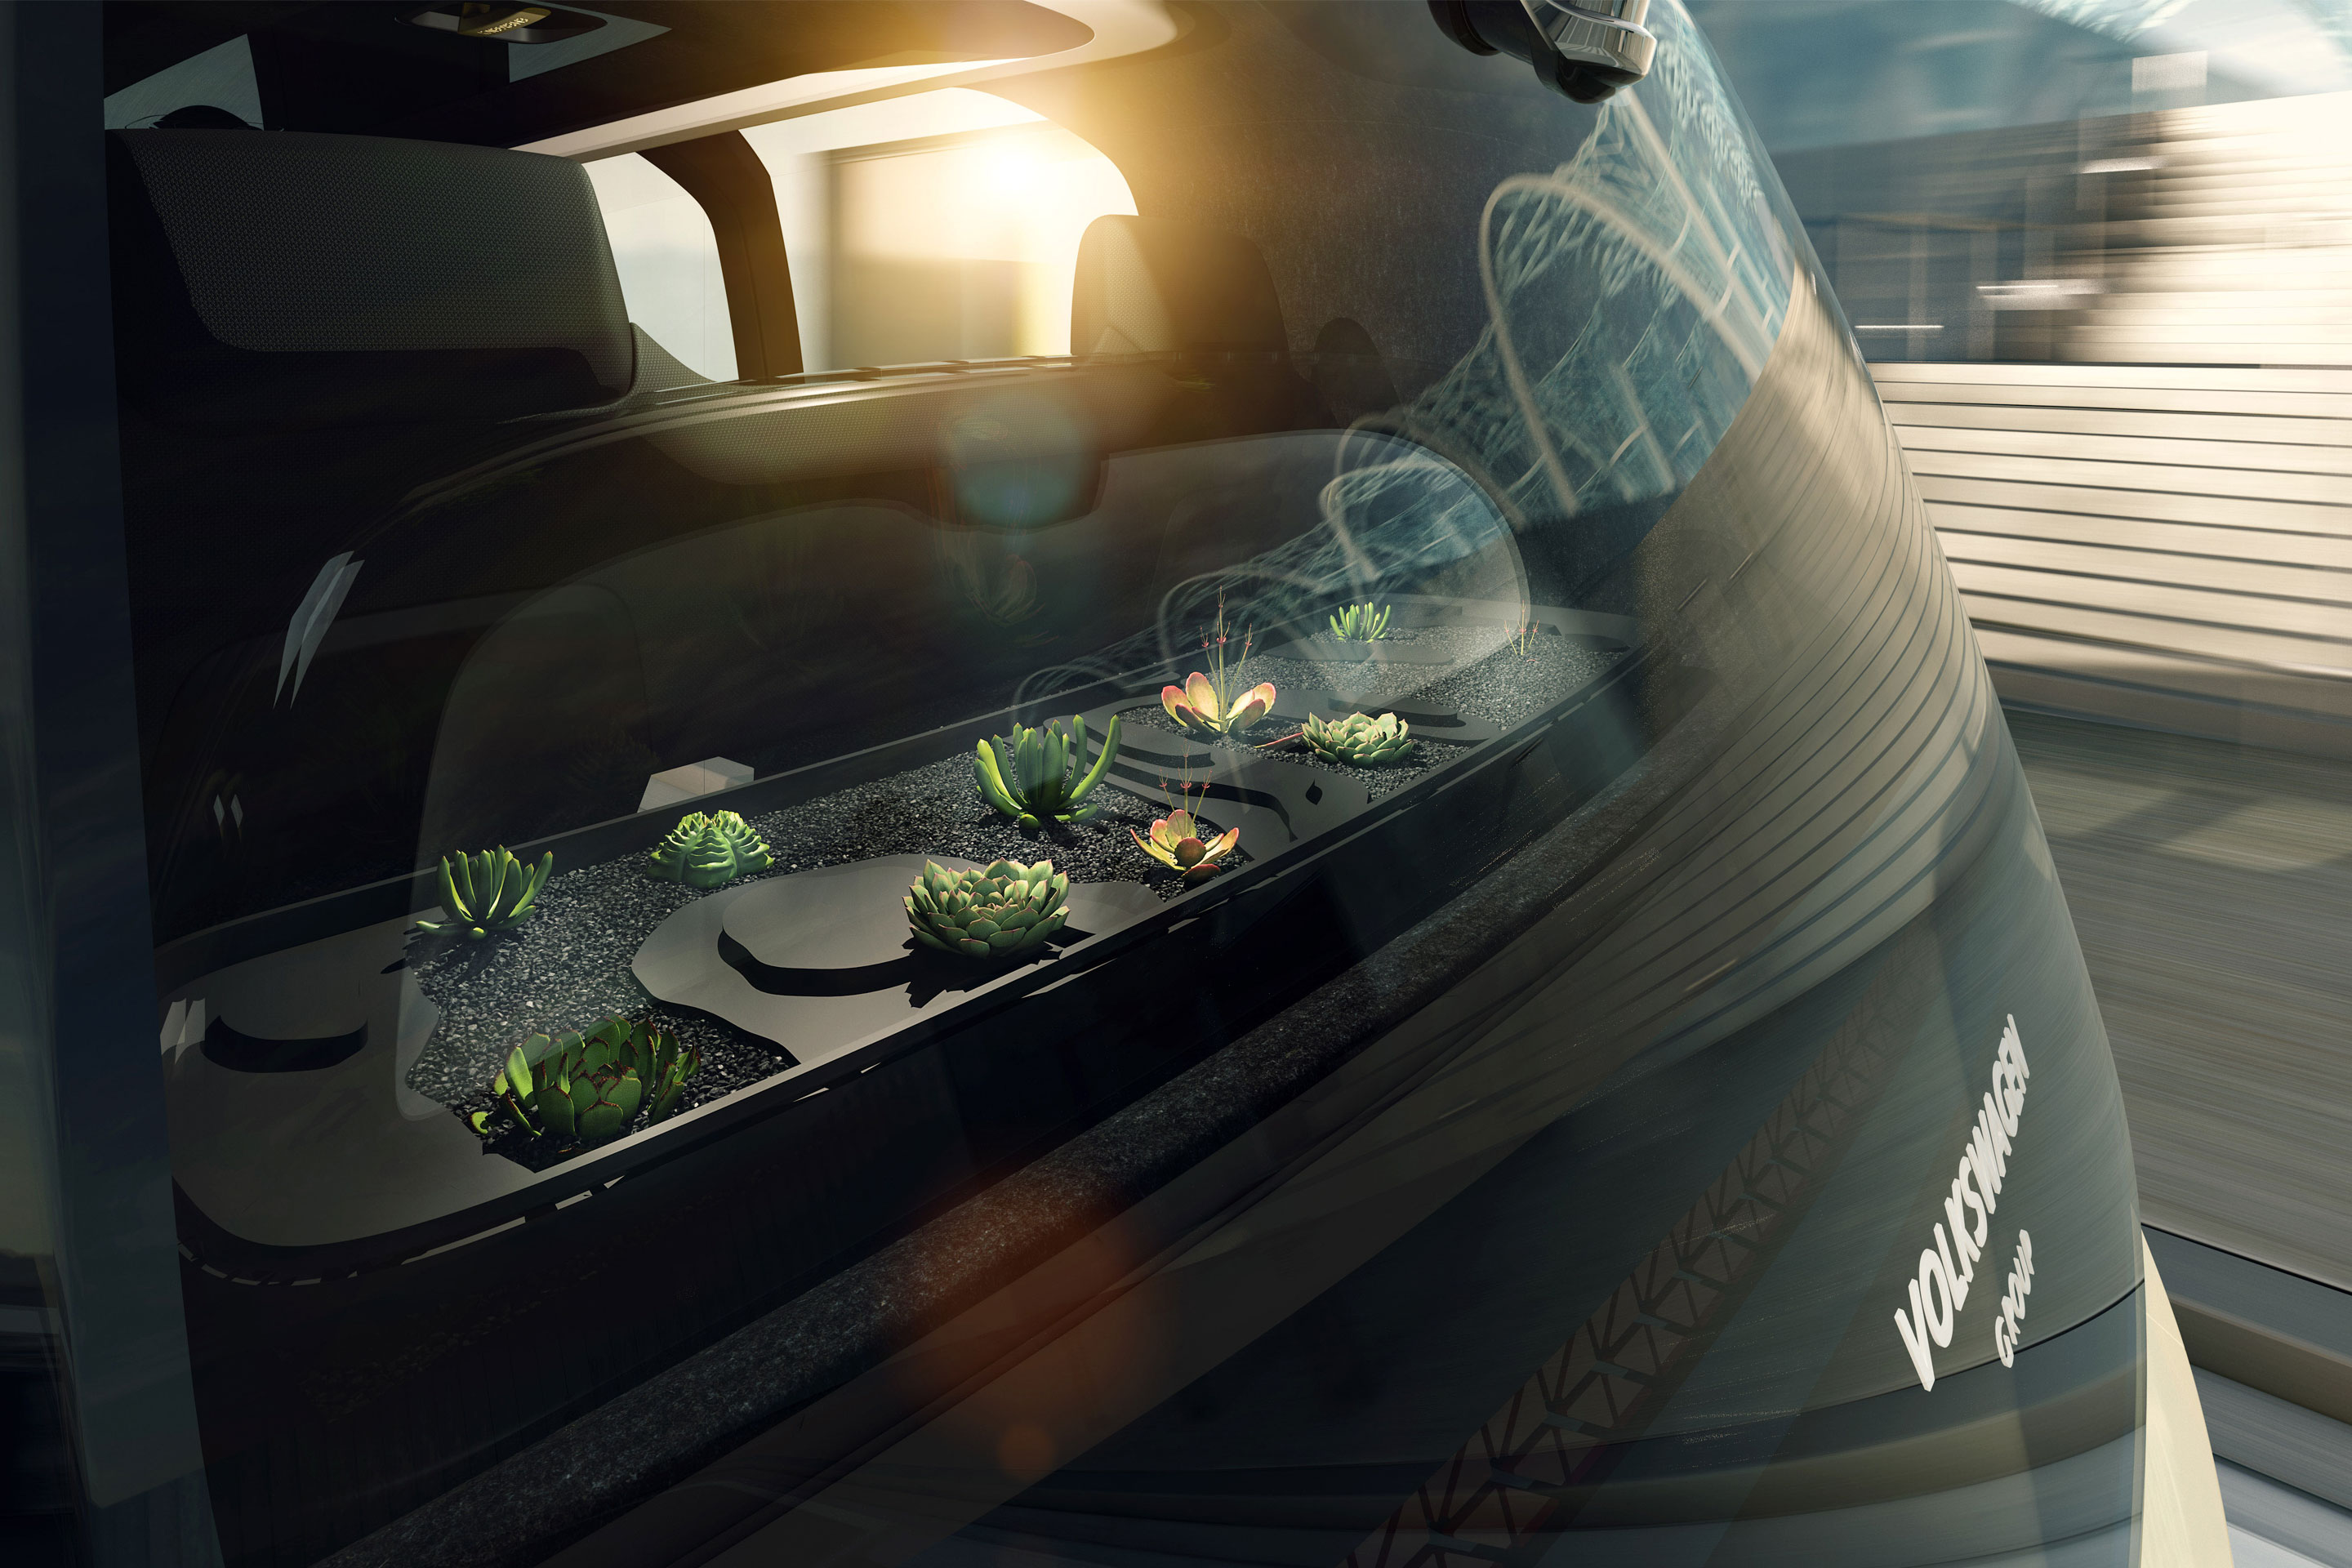 Sedric prototype includes space for plants